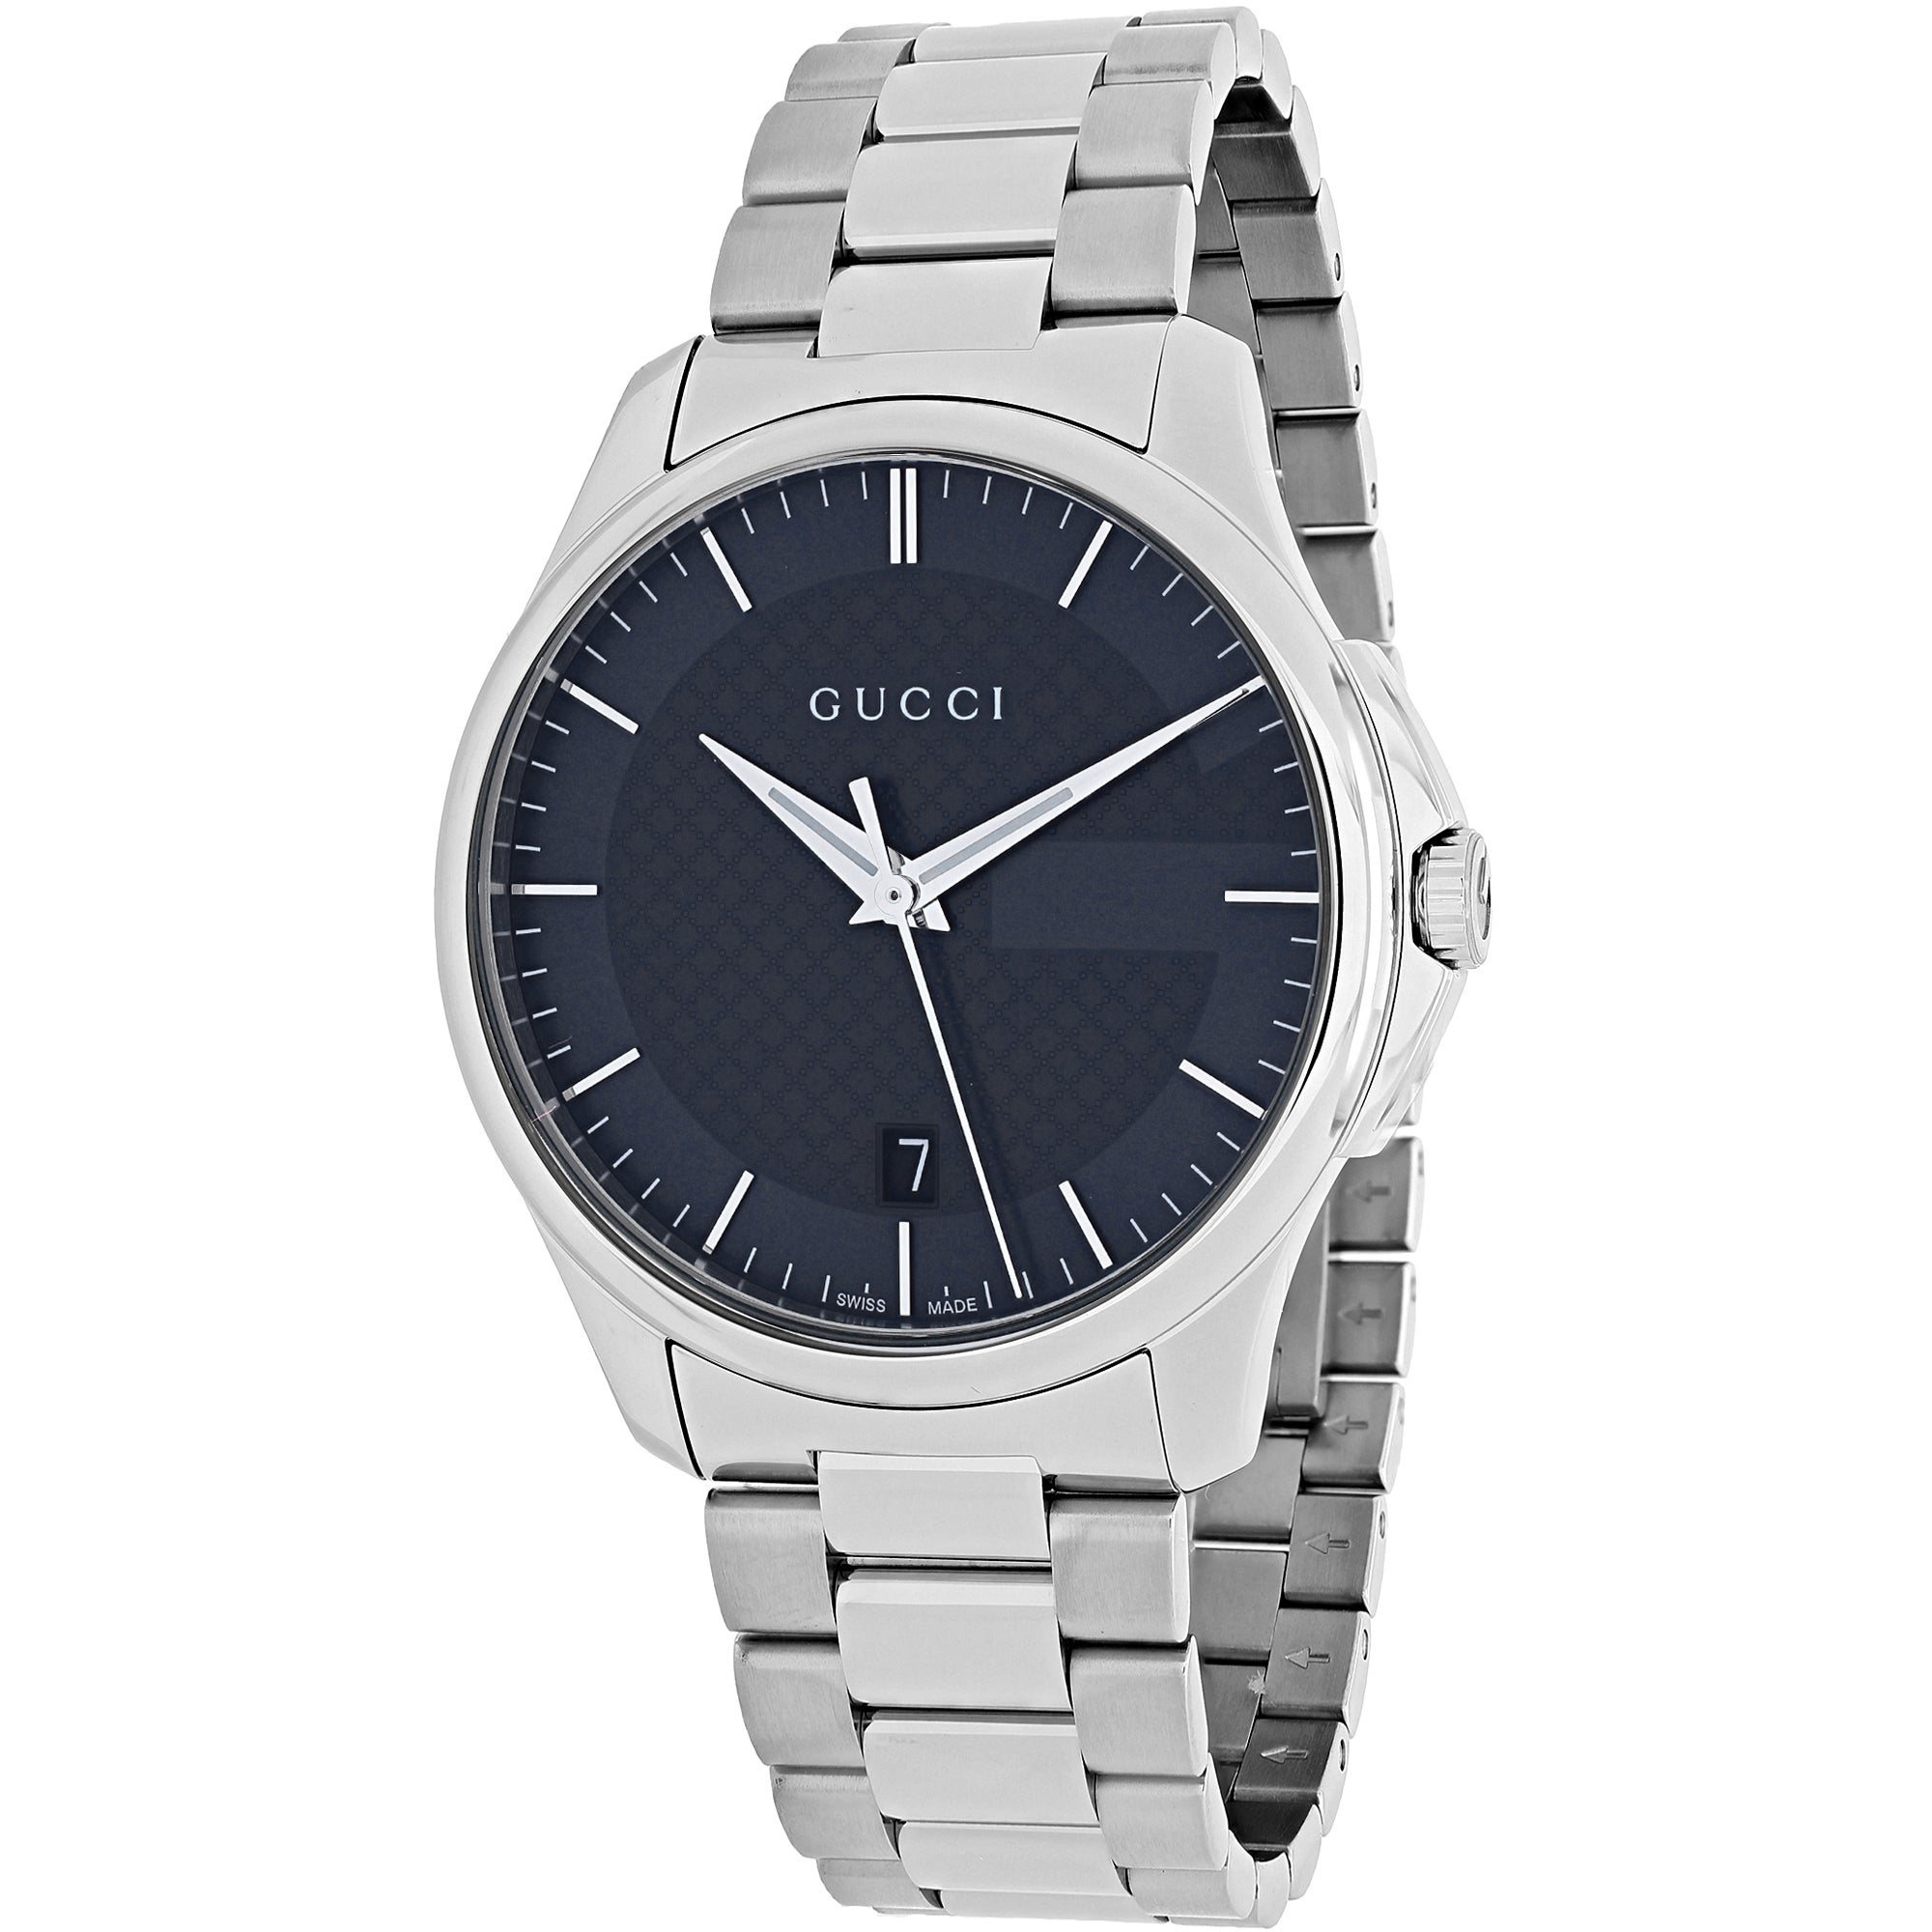 Gucci Women's YA126441 'Timeless' Grey Dial Stainless Ste...